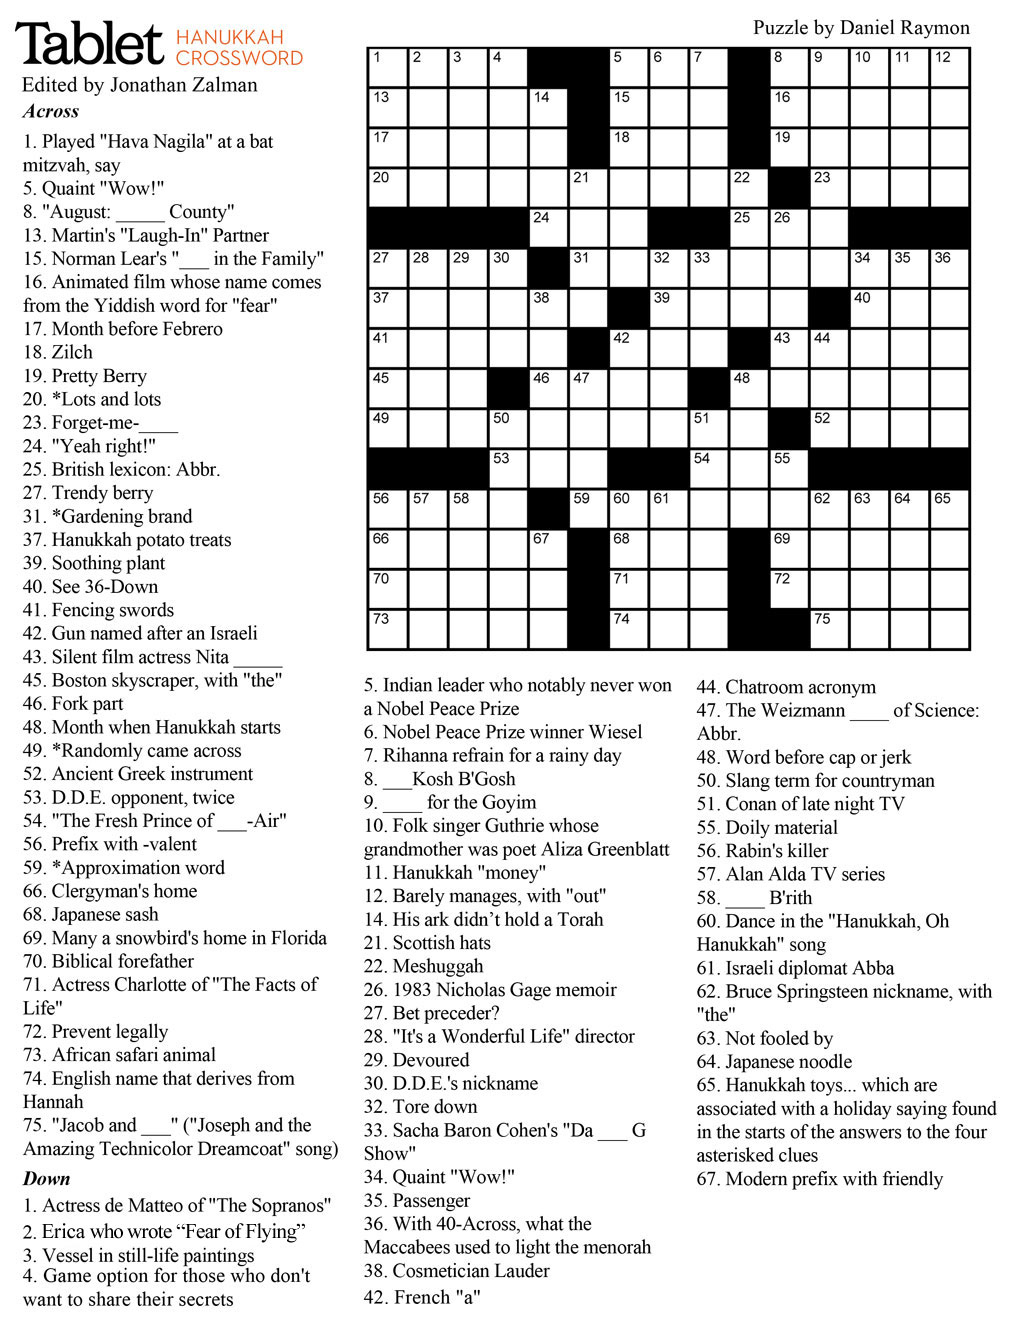 Wind Down With Our Hanukkah Crossword Puzzle! – Tablet Magazine - Printable Hanukkah Crossword Puzzles